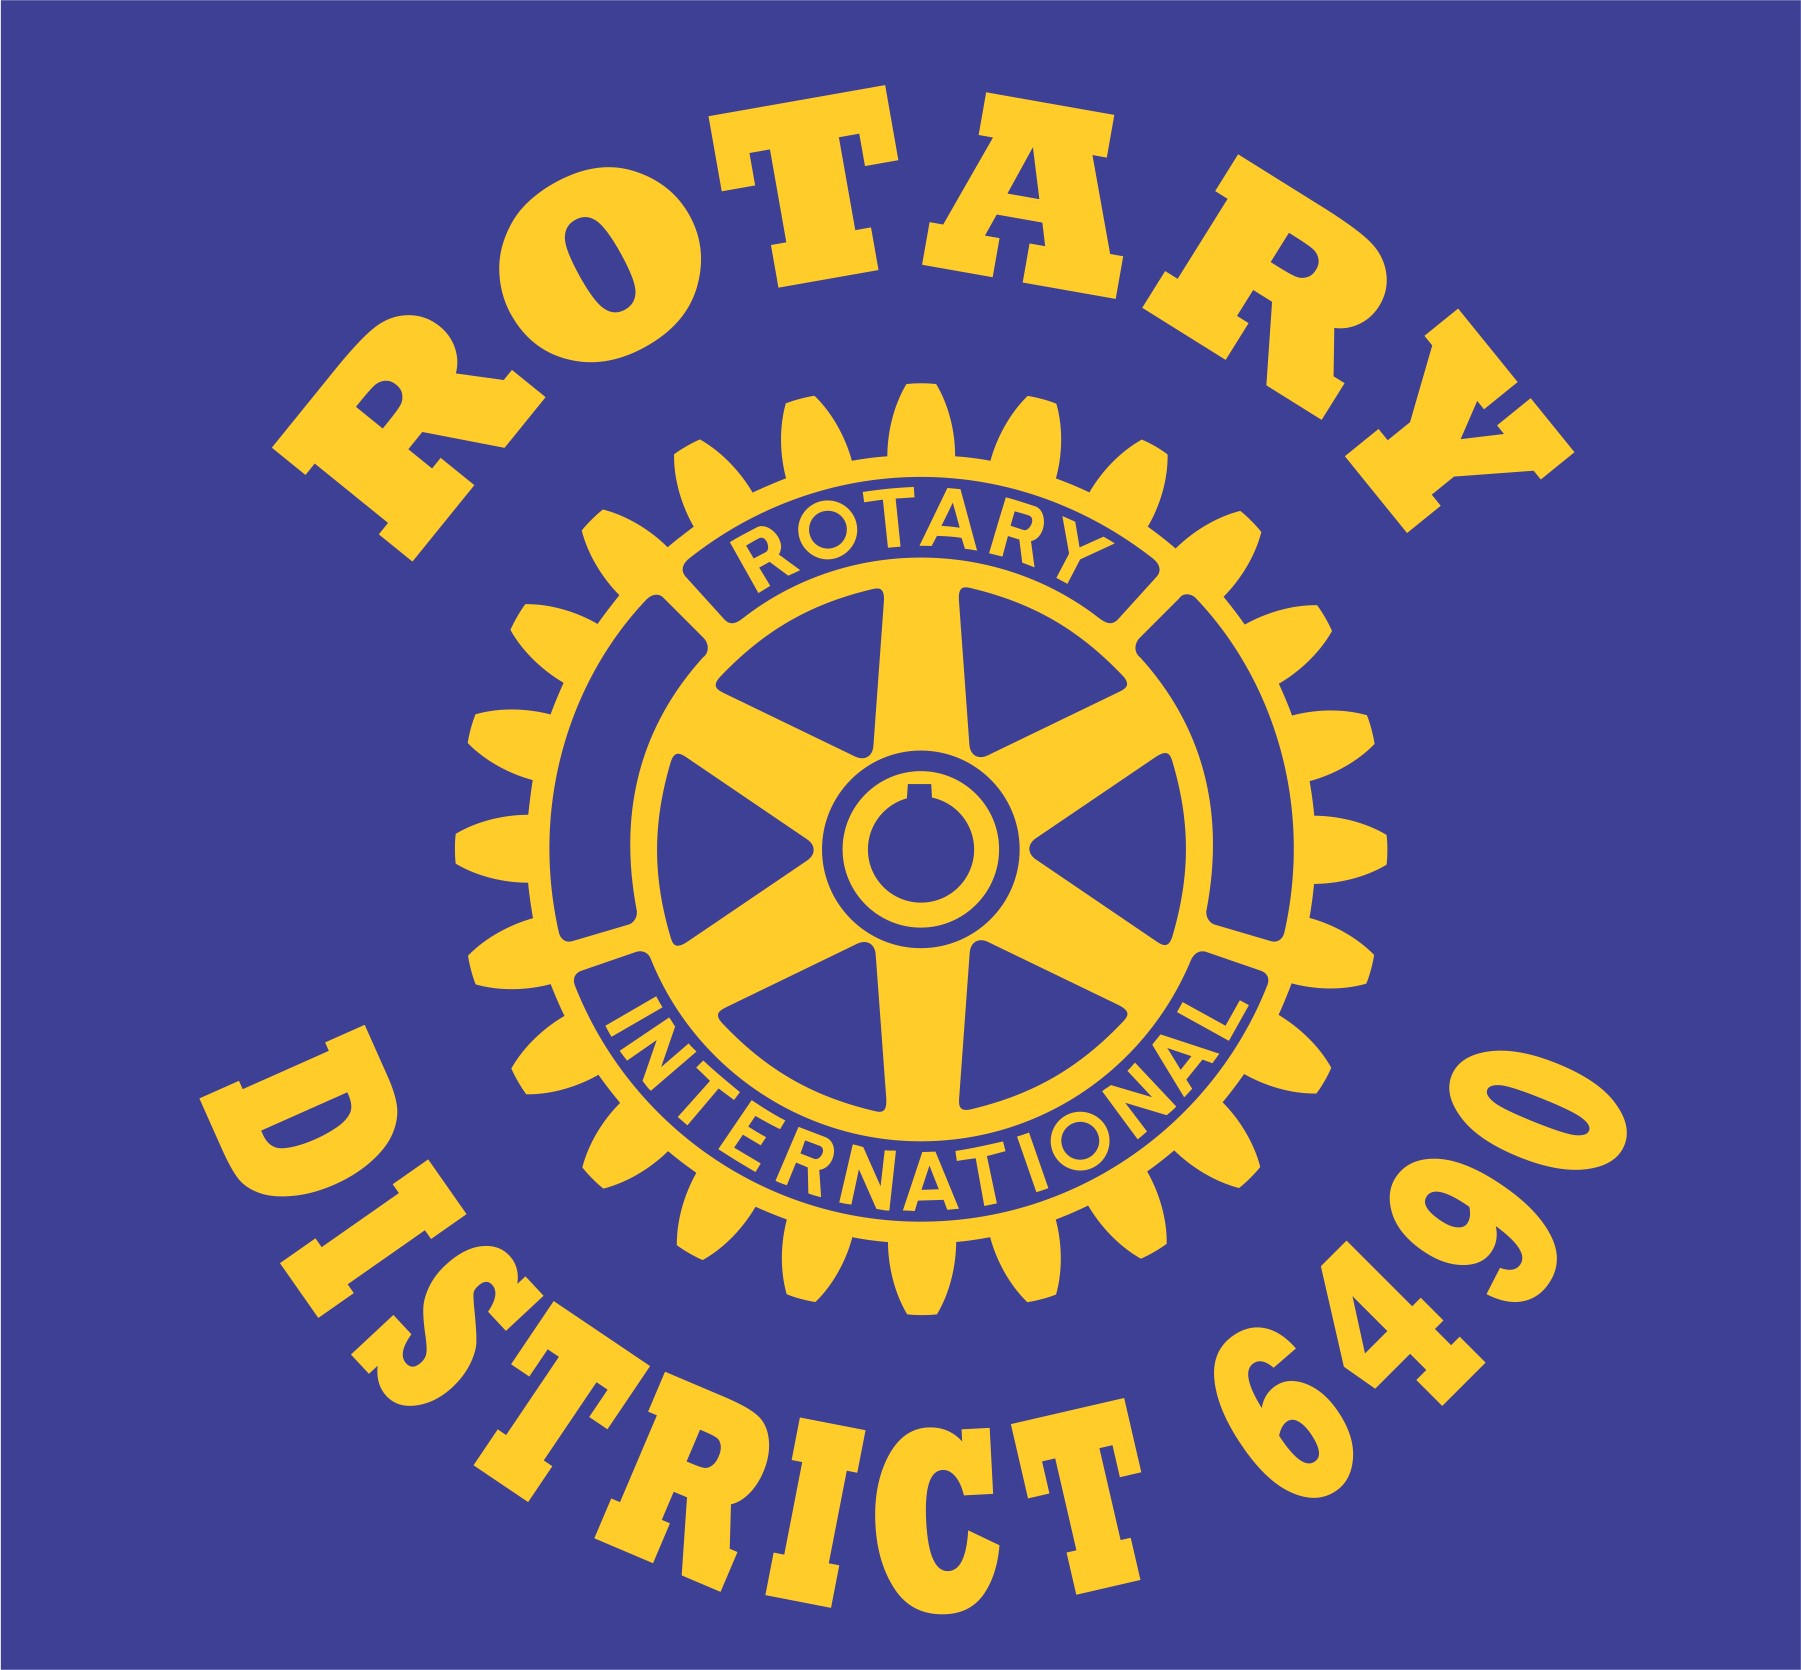 Rotary District 6490 logo